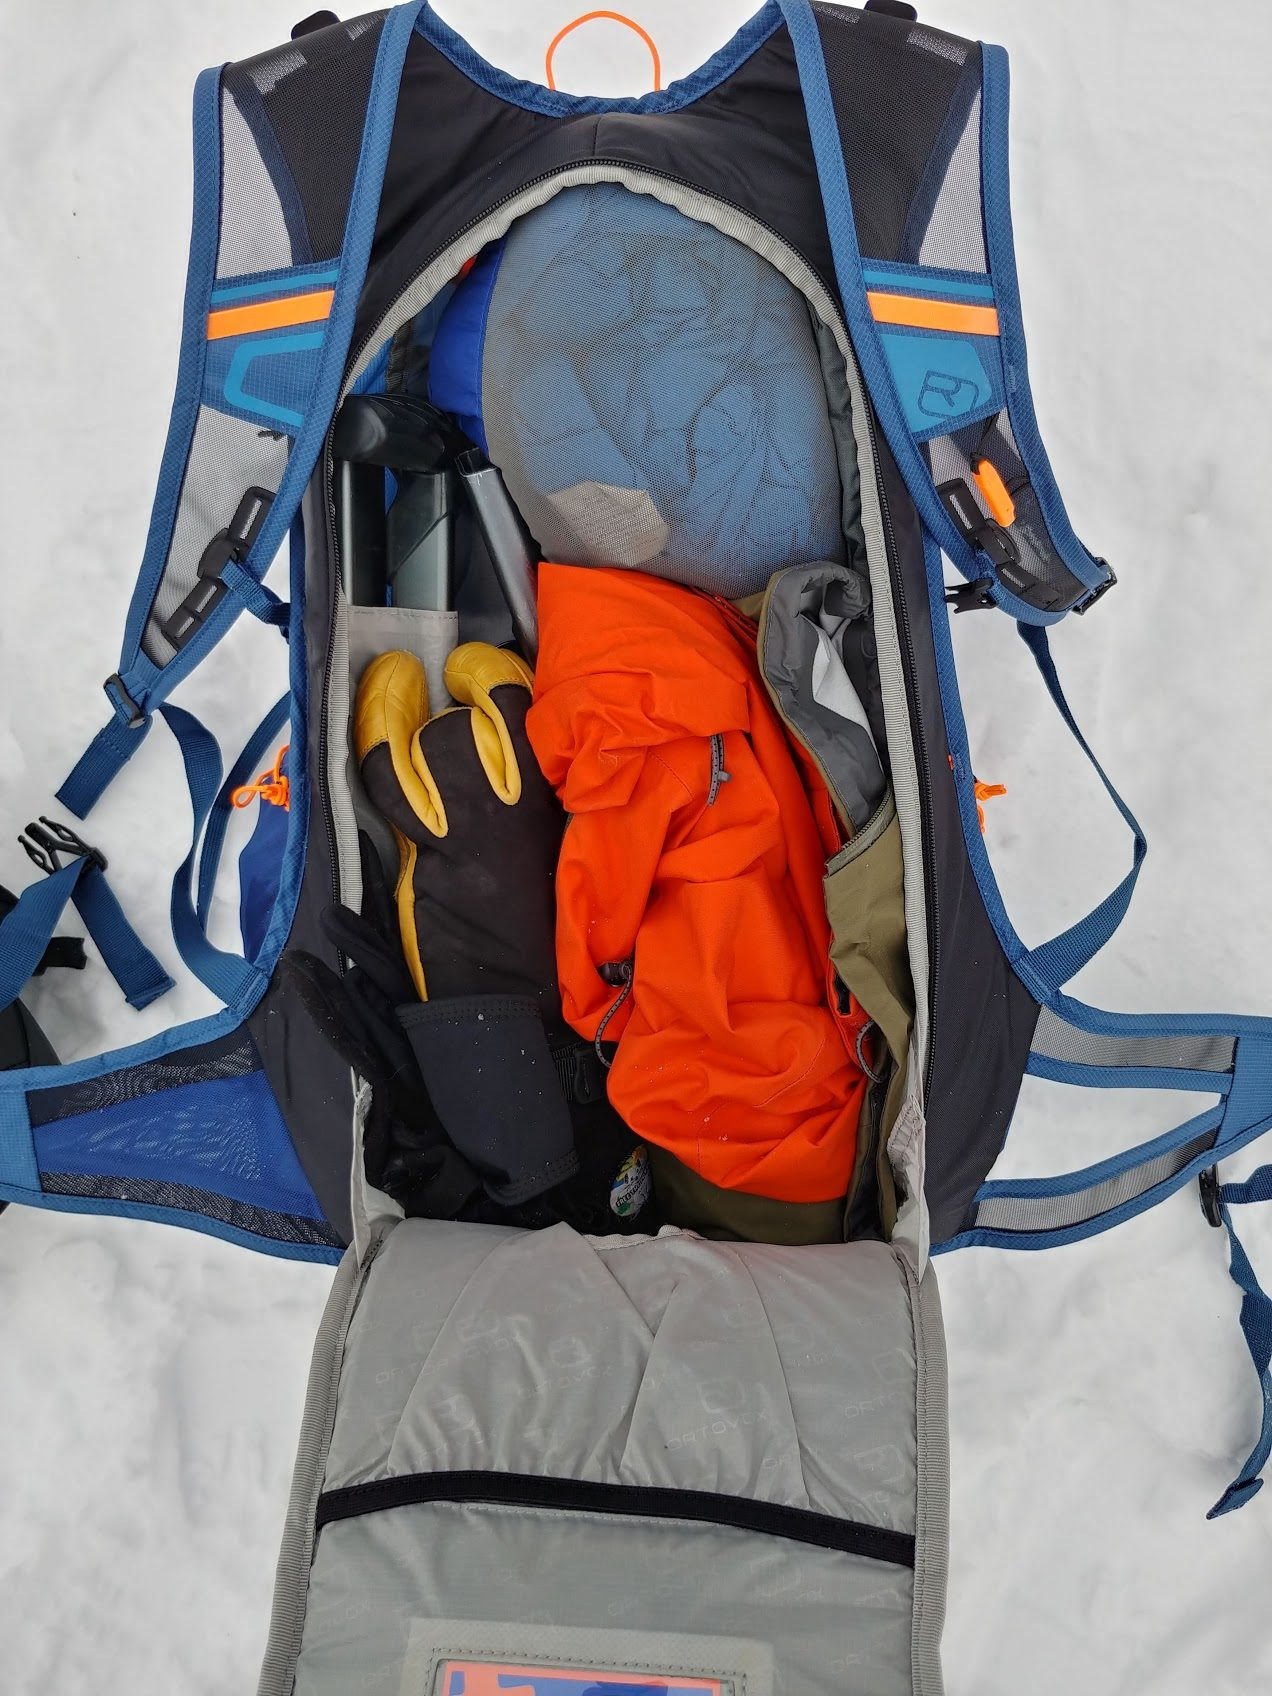 ortovox trace 25 ski touring main compartment with shell and gloves